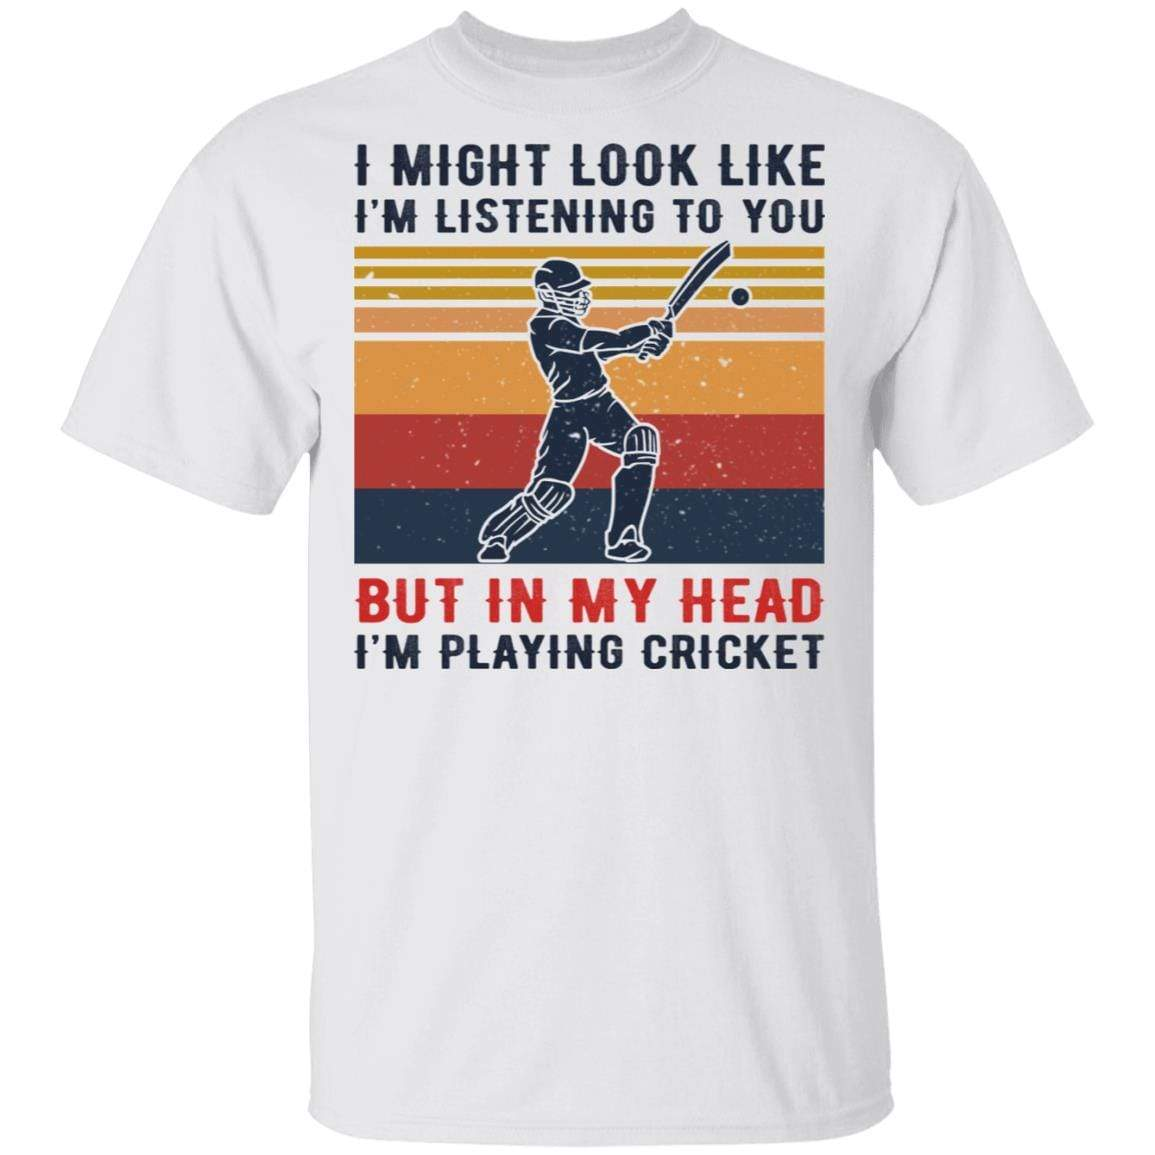 I Might Look Like I'm Listening To You But In My Head I'm Playing Cricket T-Shirts, Hoodies 1049-9974-87589424-48300 - Tee Ript